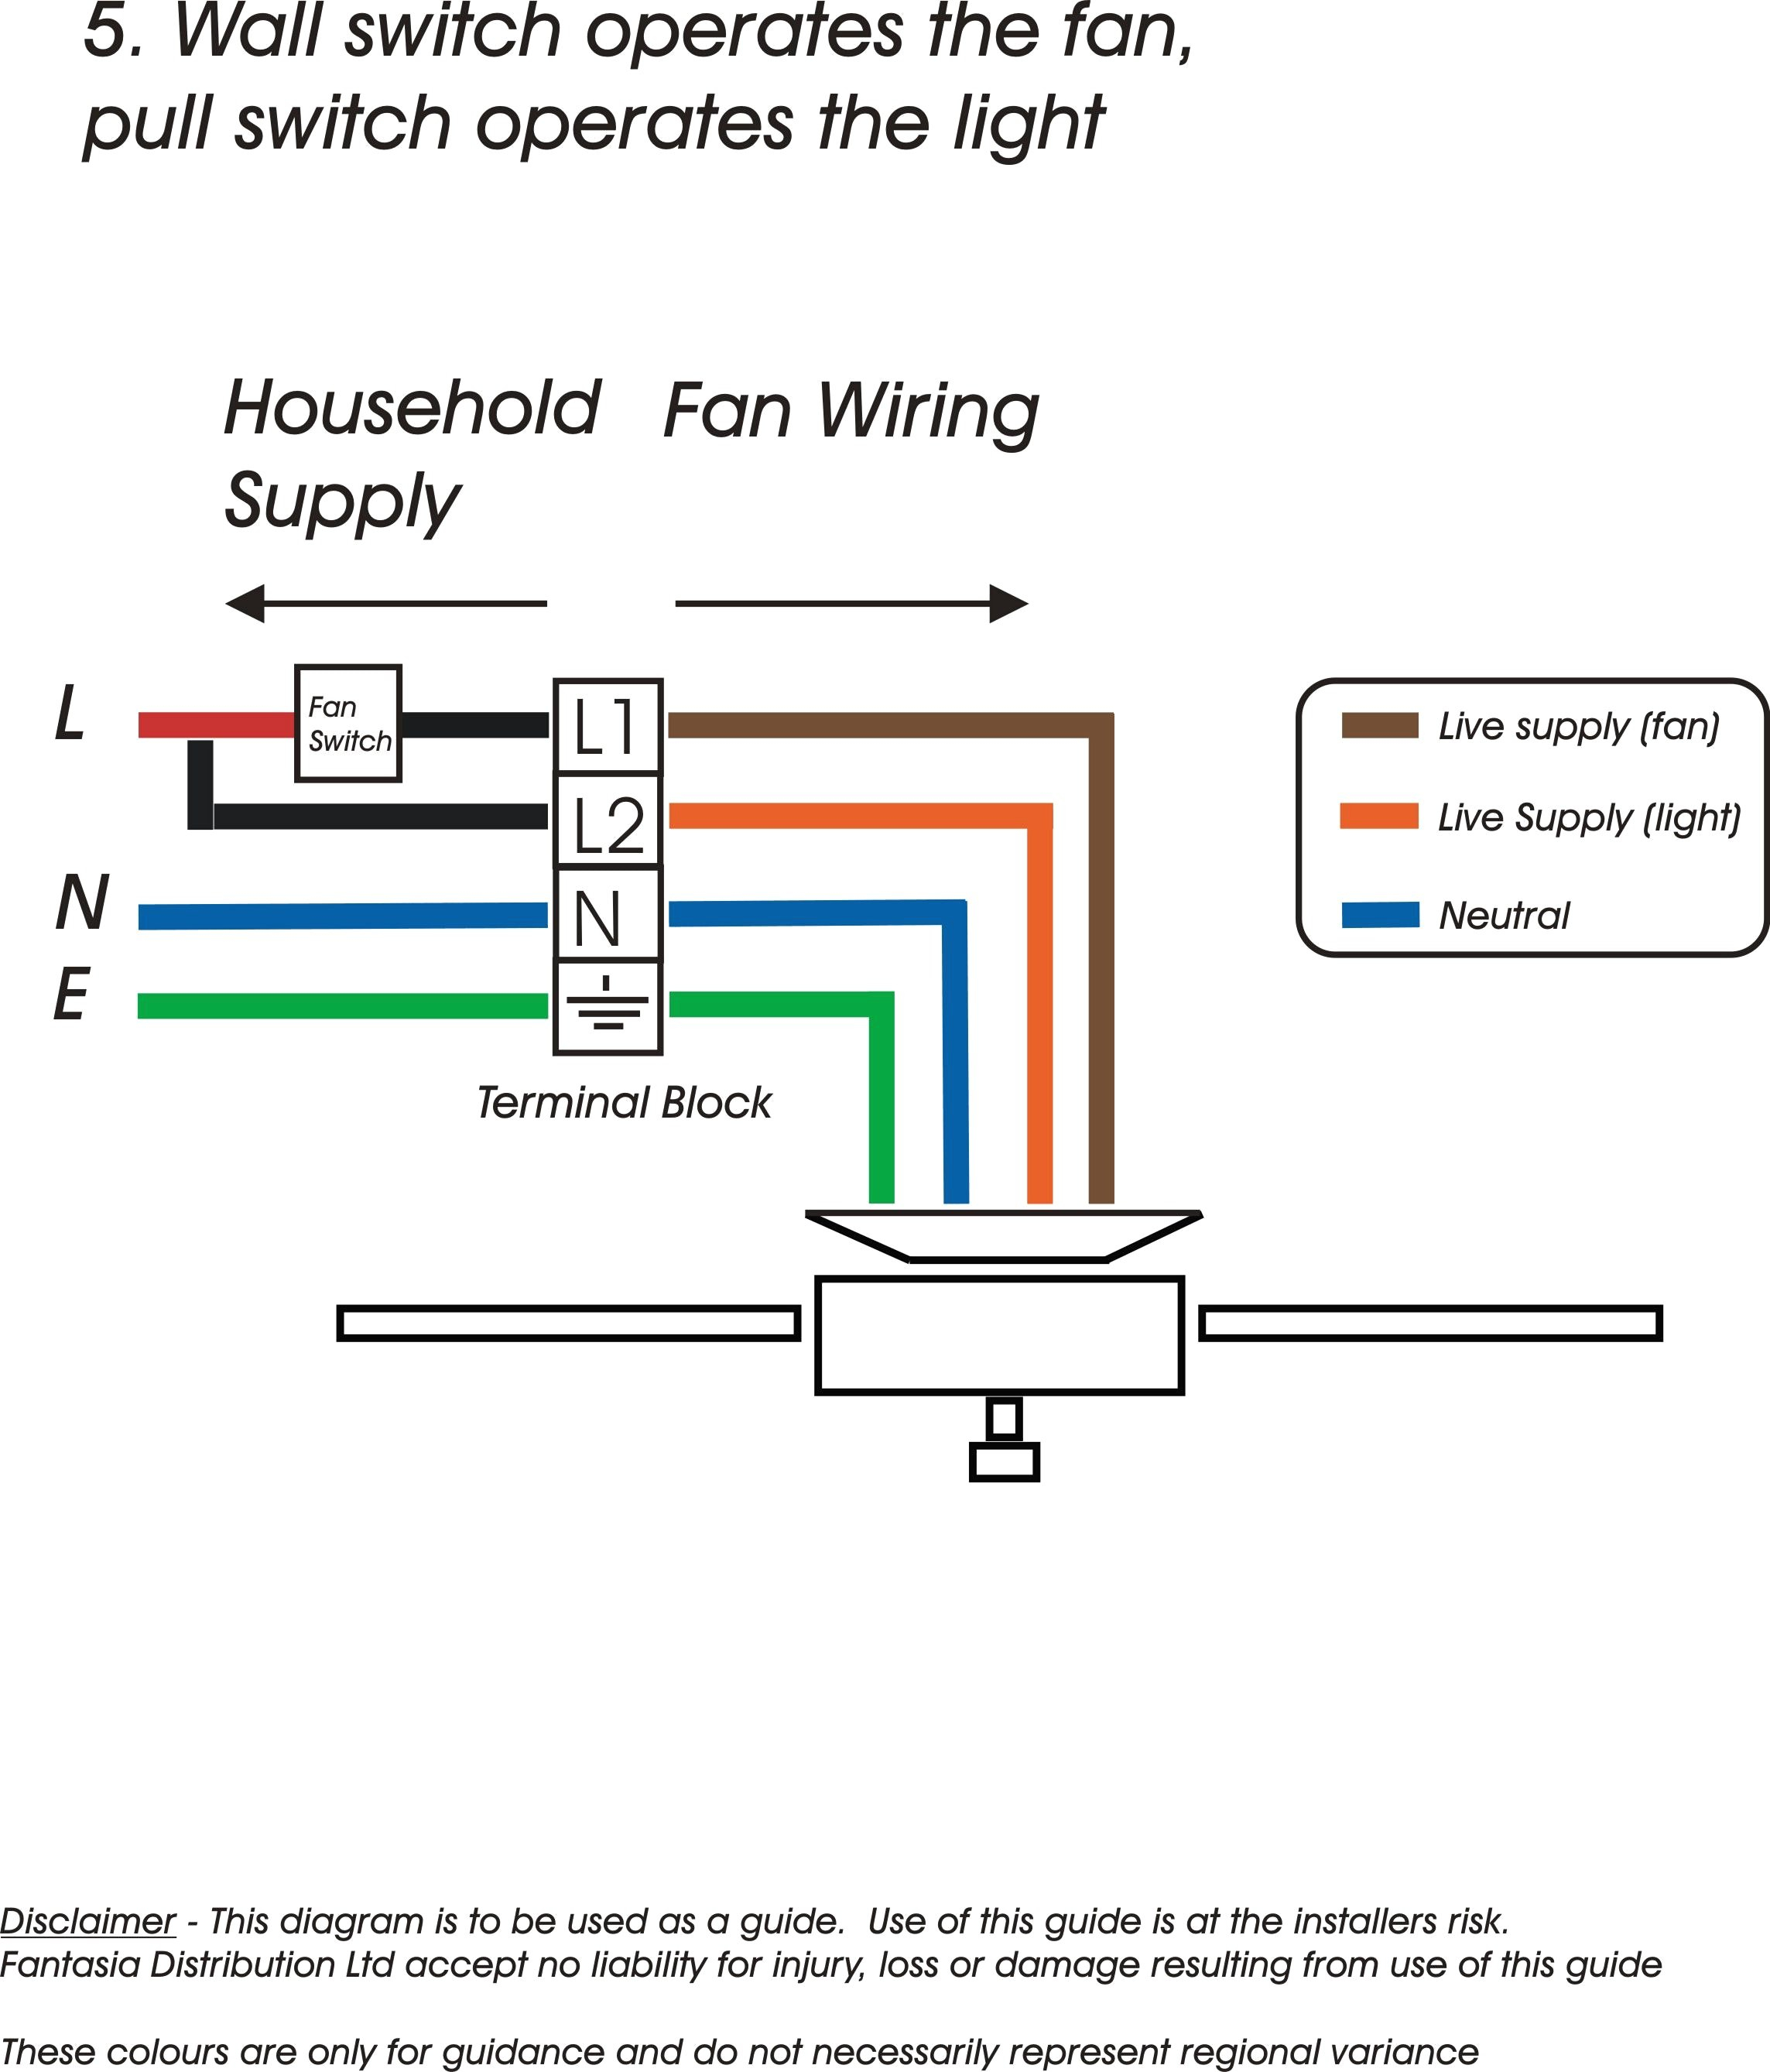 Leviton Four Way Switch Wiring Diagram from wholefoodsonabudget.com